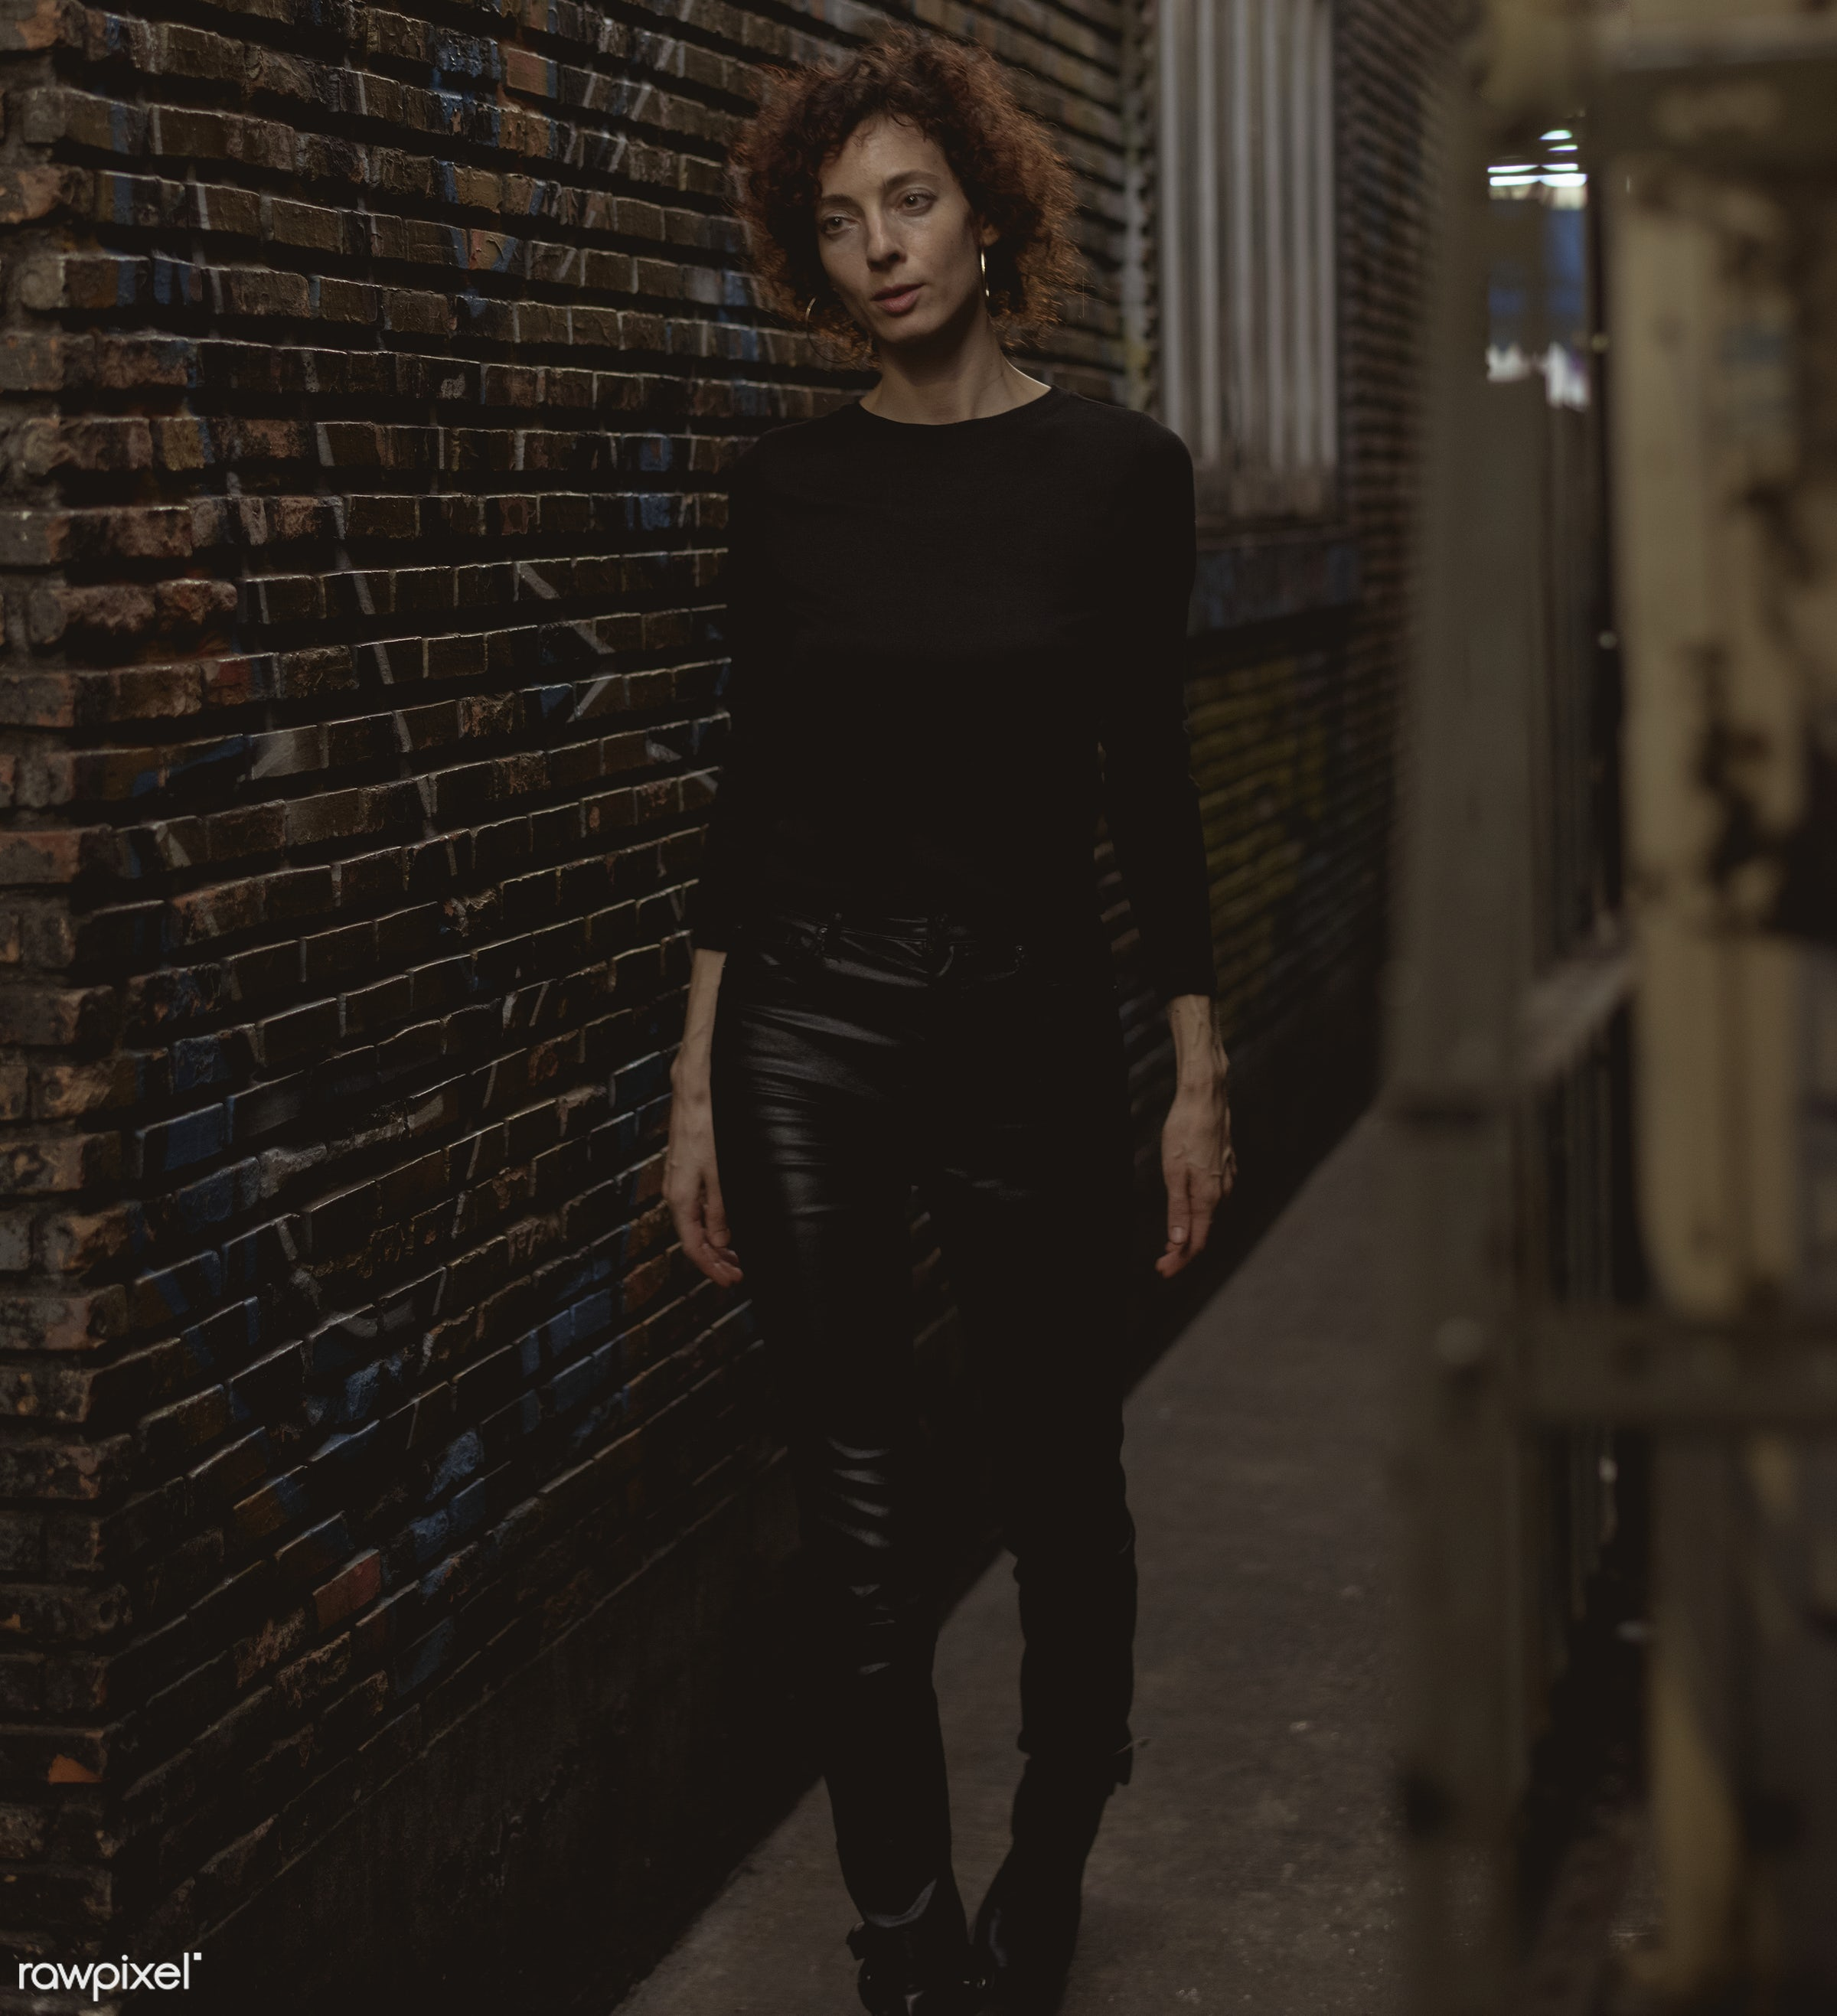 Woman walking through an alley - alley, alone, bar, curly hair, dark, emotion, expression, face, feeling, lifestyle, night,...